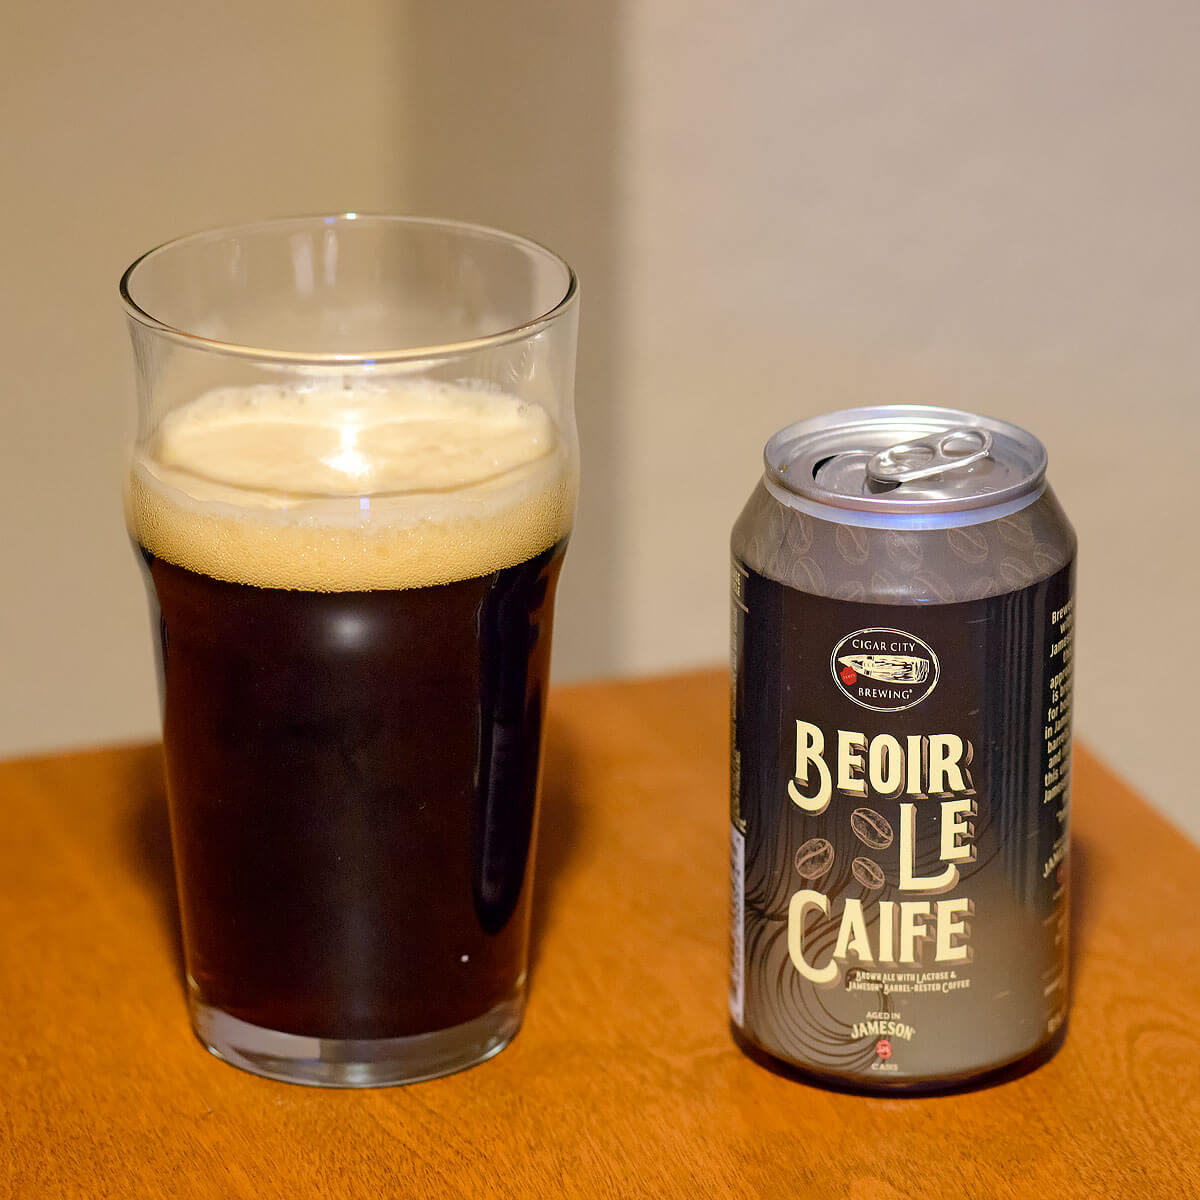 Beior Le Caife, an American Brown Ale by Cigar City Brewing